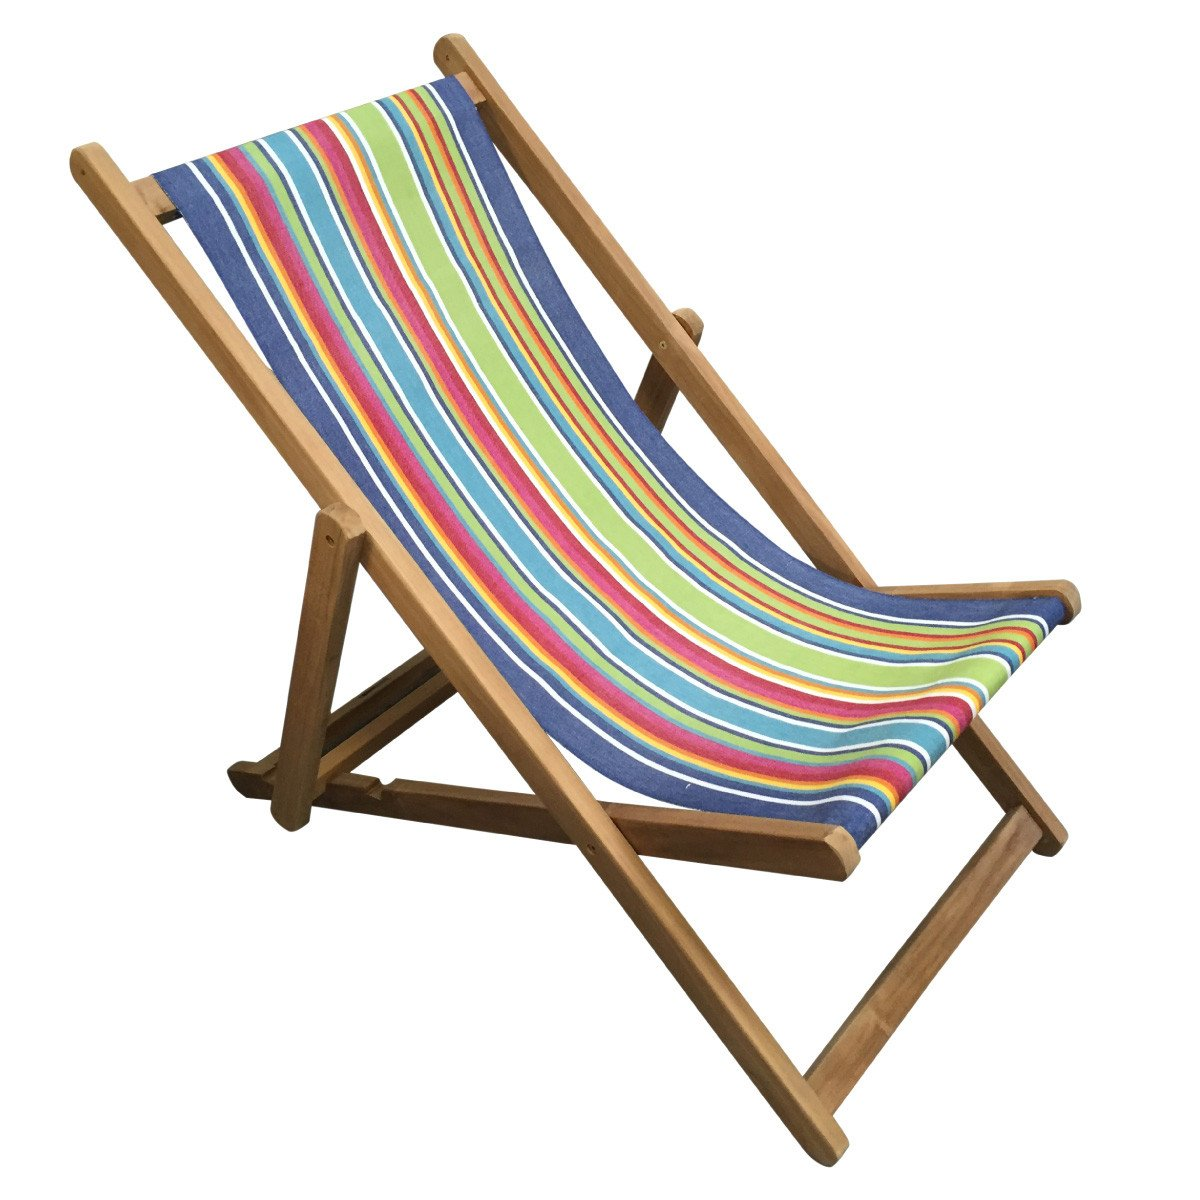 Climbing Premium Teak Hardwood Striped Deckchair - Deckchair Stripes